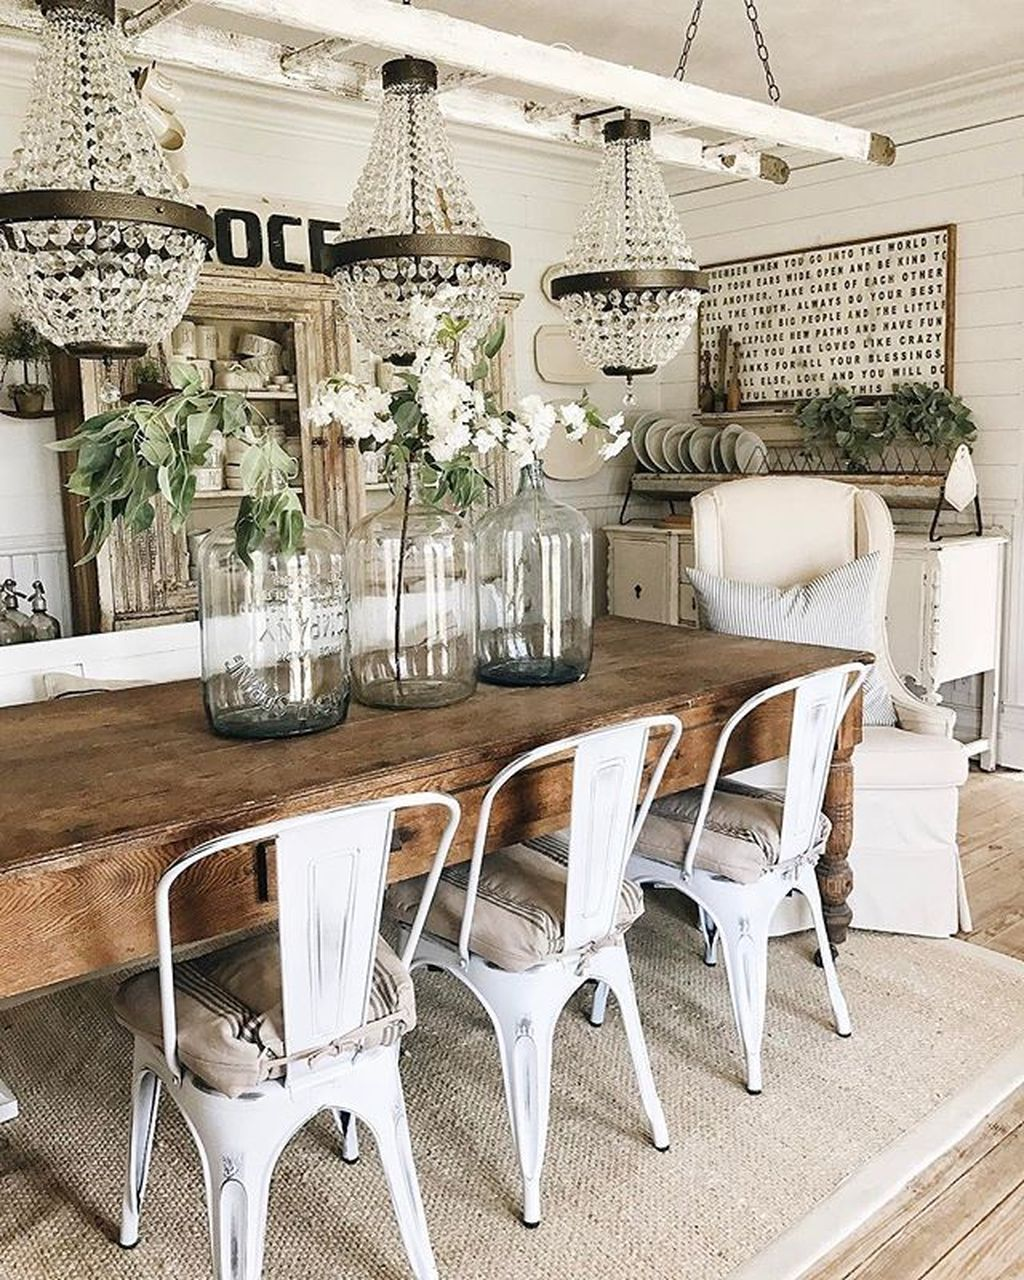 Admirable Farmhouse Living Room Decor Ideas 27